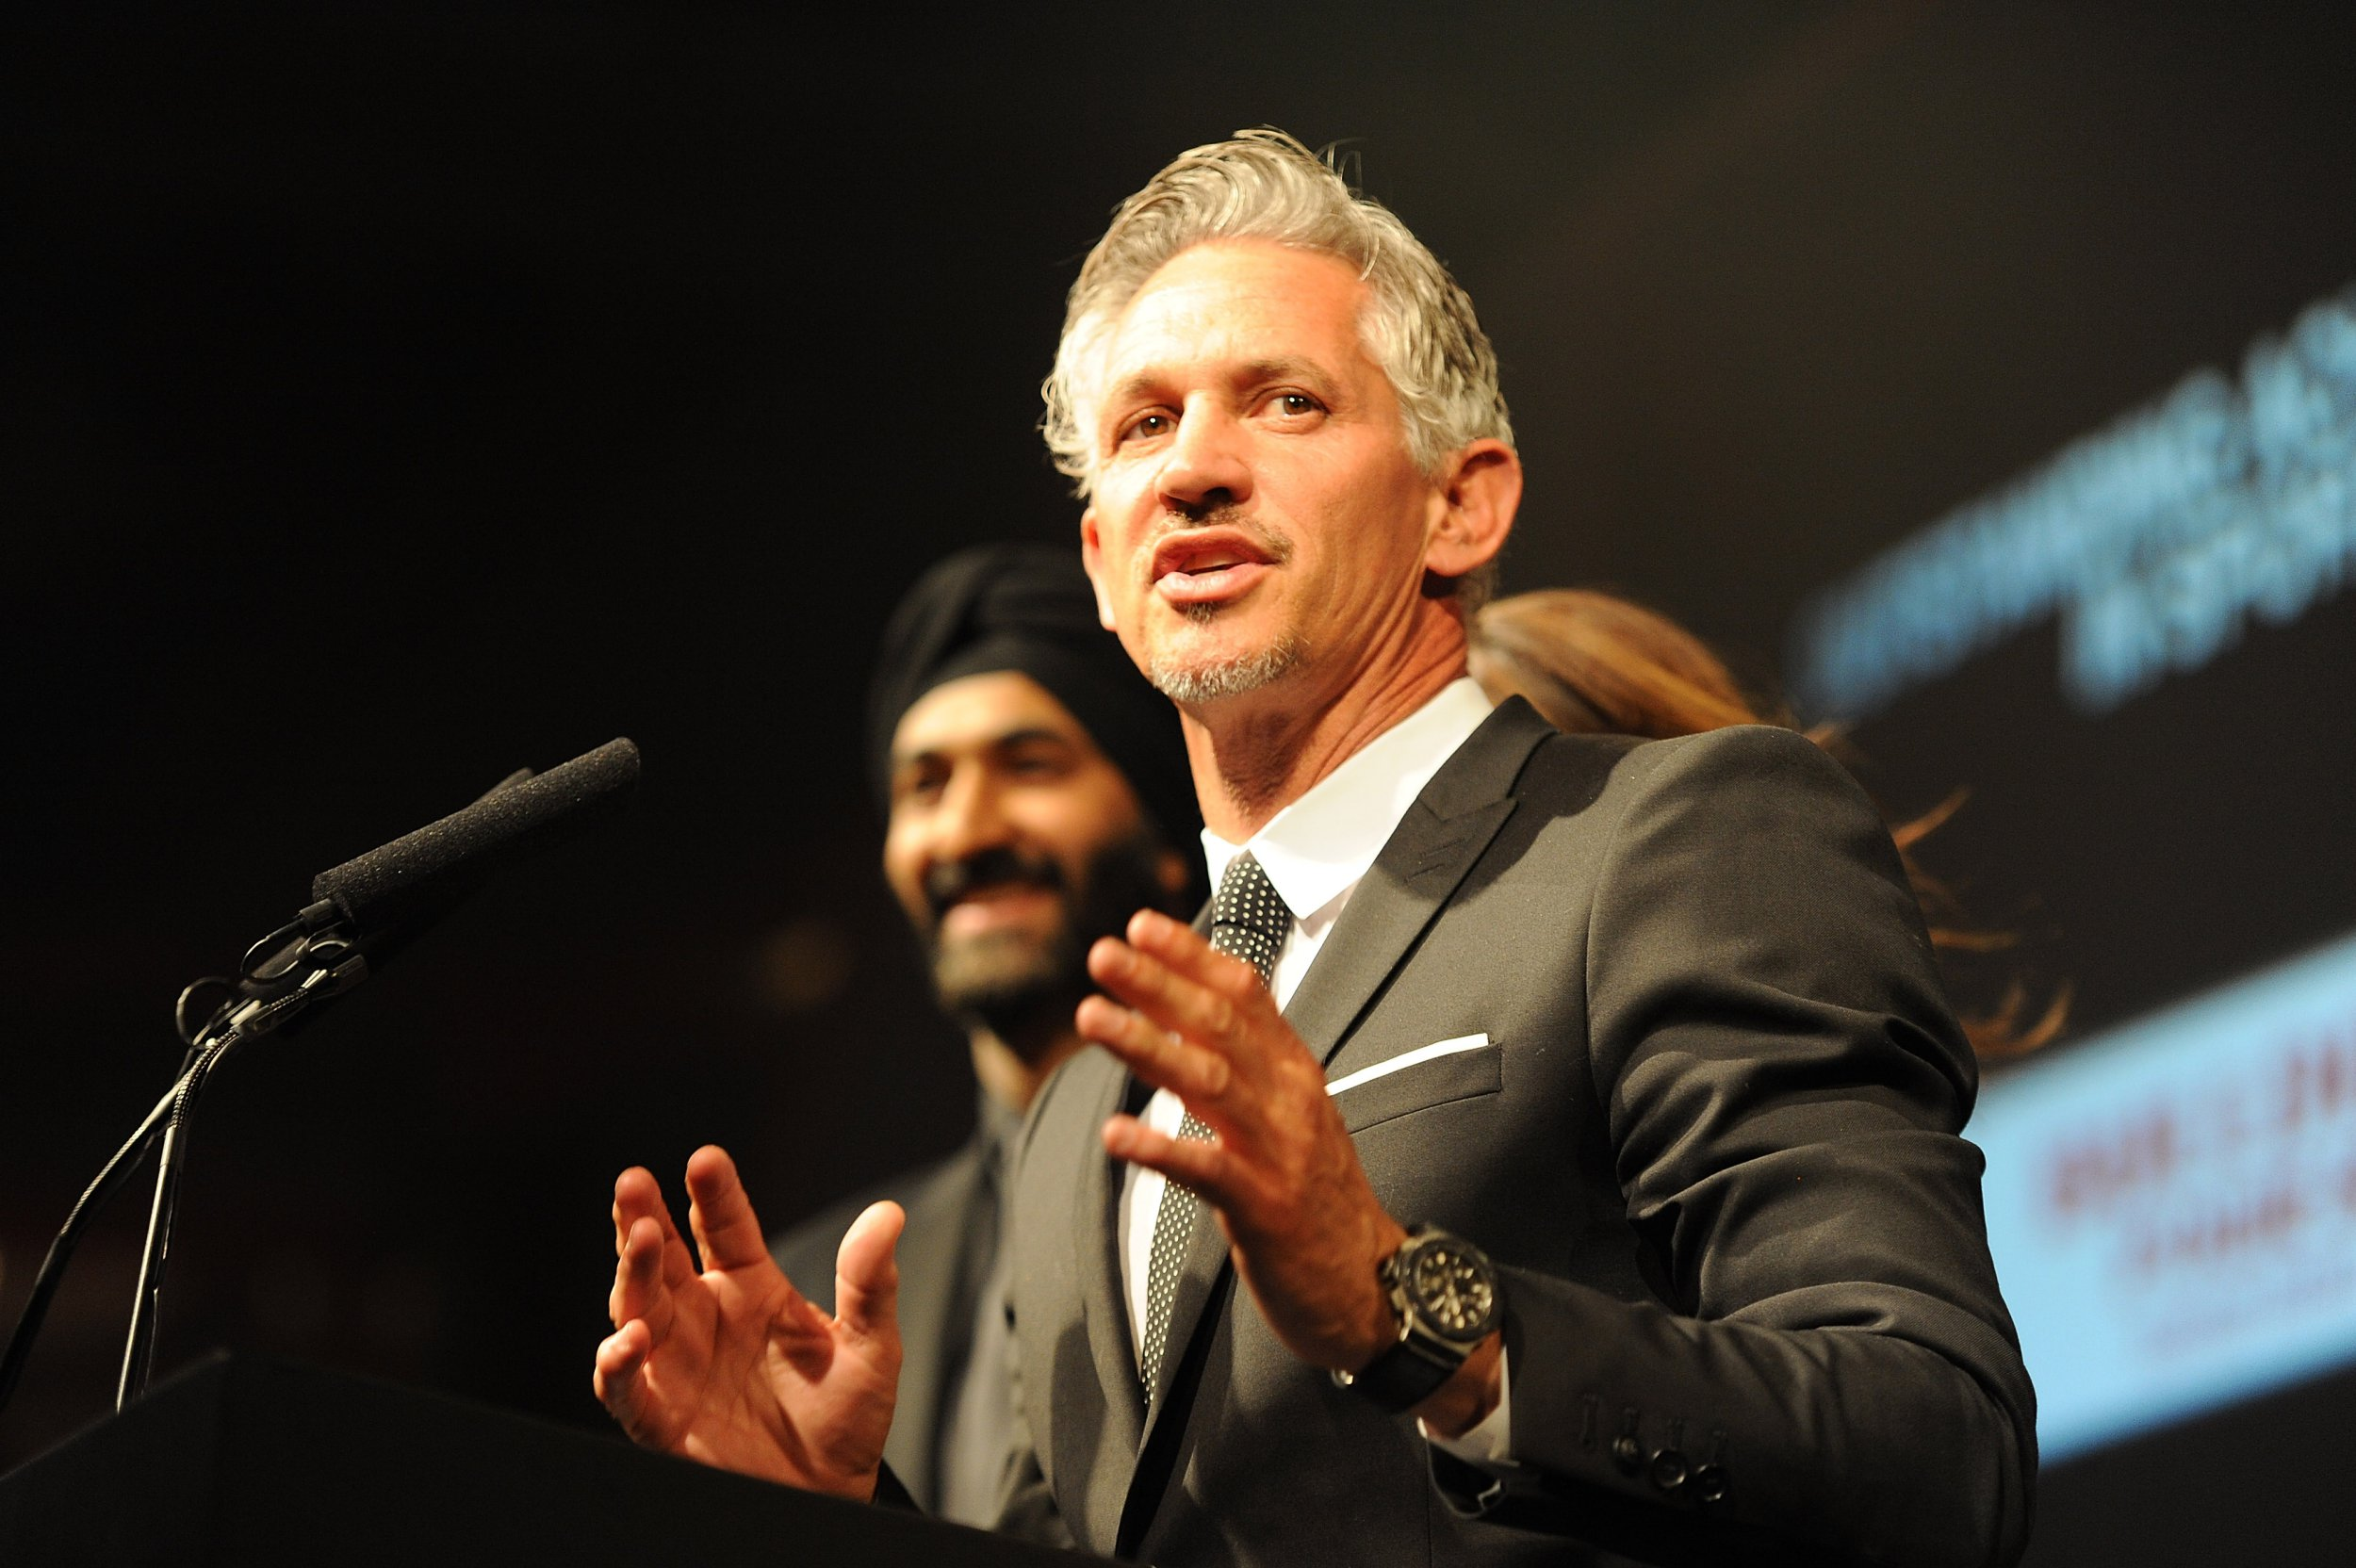 LONDON, ENGLAND - APRIL 17: SUN NEWSPAPER OUT. MANDATORY CREDIT PHOTO BY DAVE J. HOGAN GETTY IMAGES REQUIRED Gary Lineker presents during The Asian Awards 2015 at The Grosvenor House Hotel on April 17, 2015 in London, England. (Photo by Dave J Hogan/Getty Images)